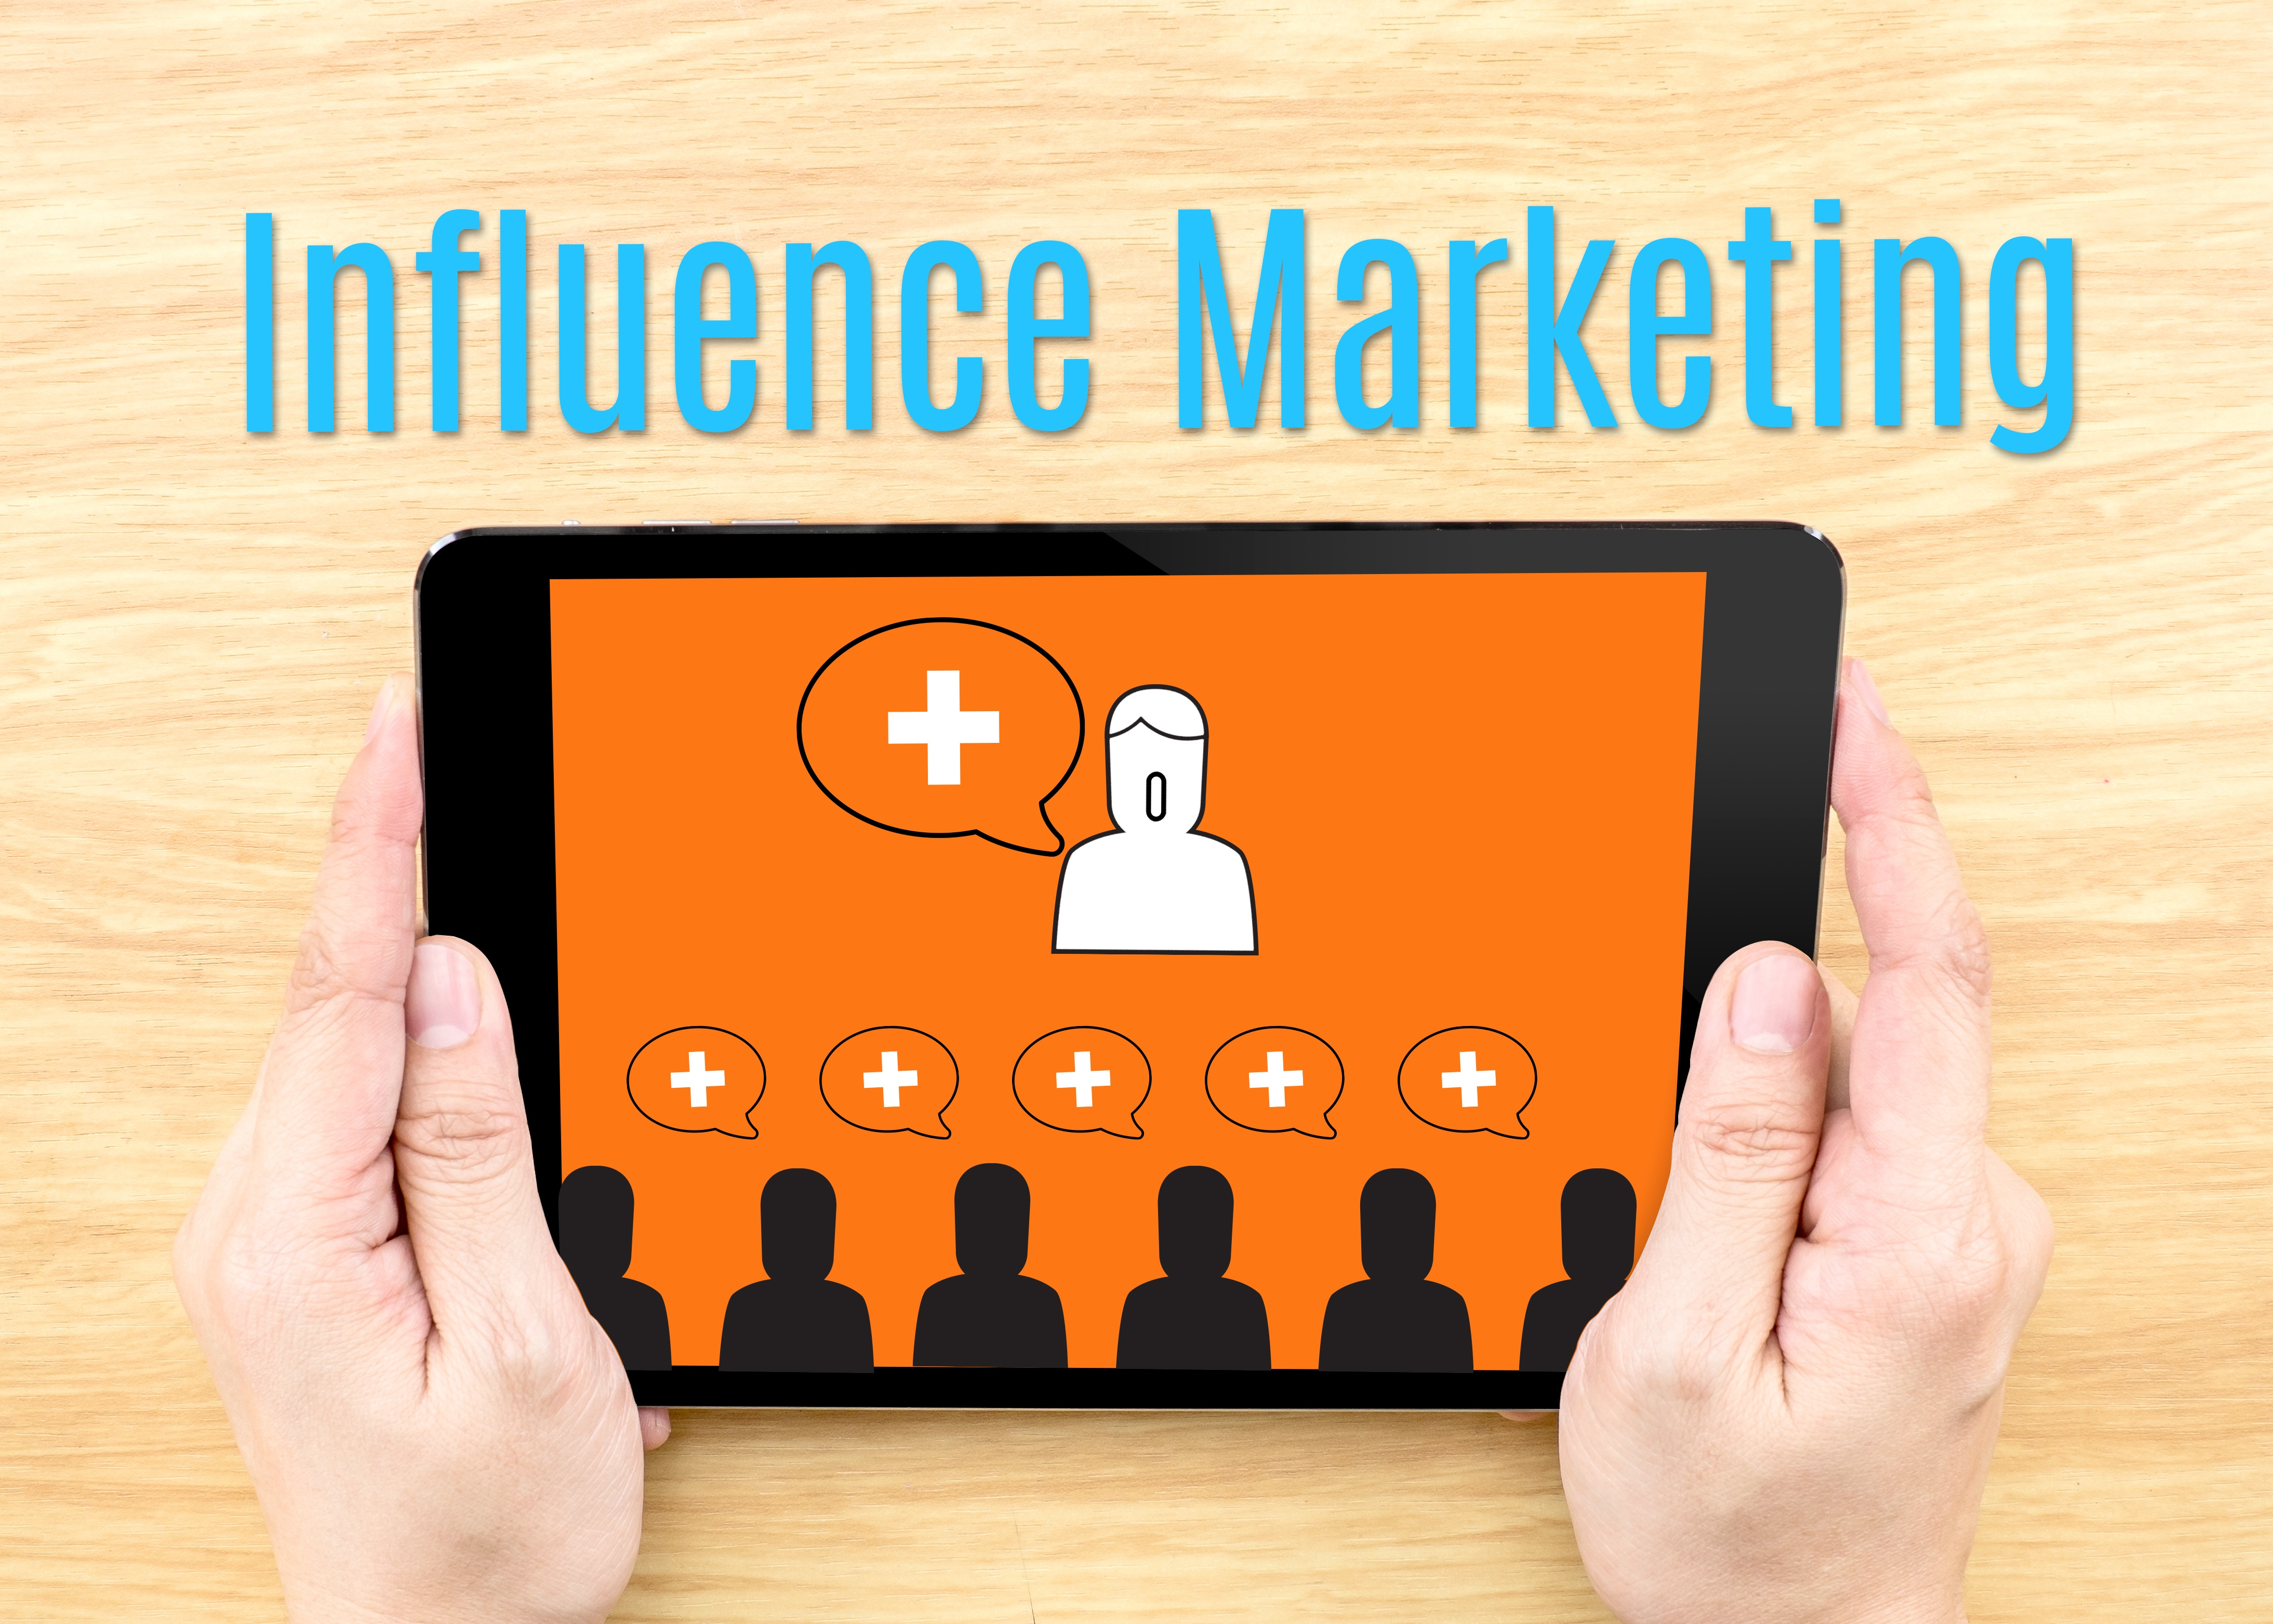 3 Tips for Driving More Sales with Influencer Marketing